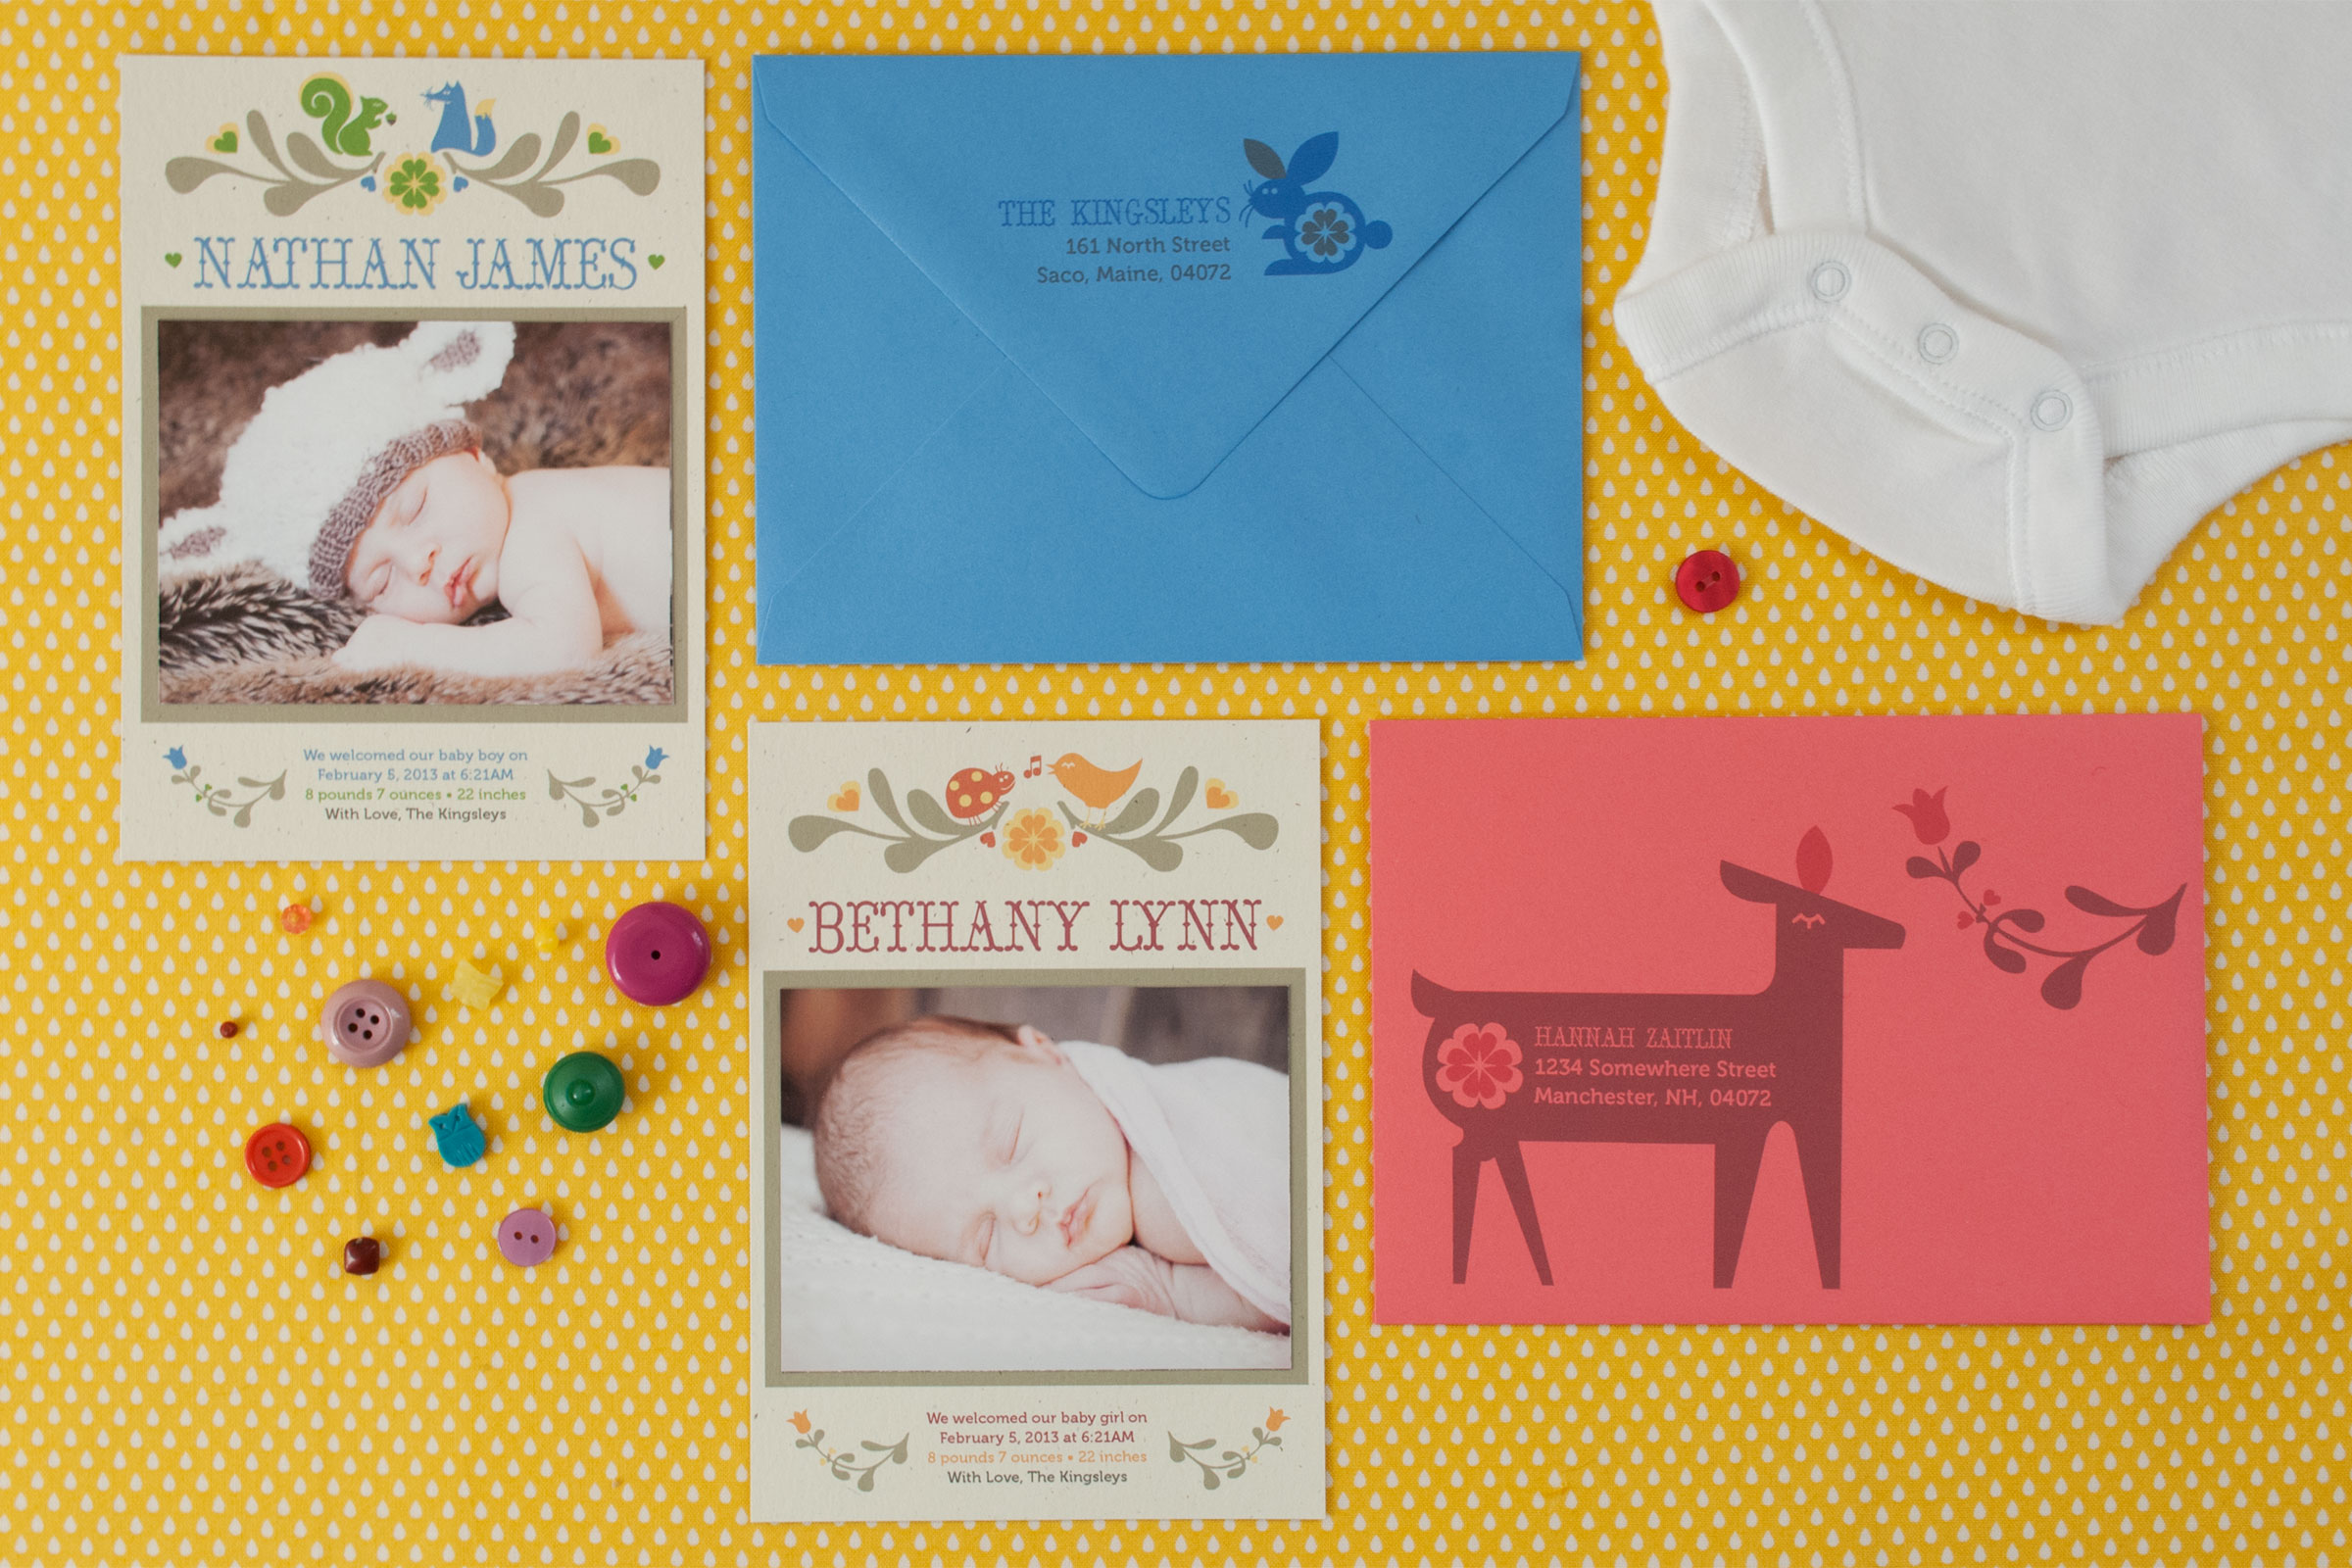 First up is the  Sherwood , which coordinates with one of our existing Baby Shower stationery suites. Featuring folk-art inspired forest creatures, this whimsical design can be adapted in any color palette and includes an appliqued photograph of the little one. Adorable matching graphics may be printed on the envelopes as an optional Addressing add-on.